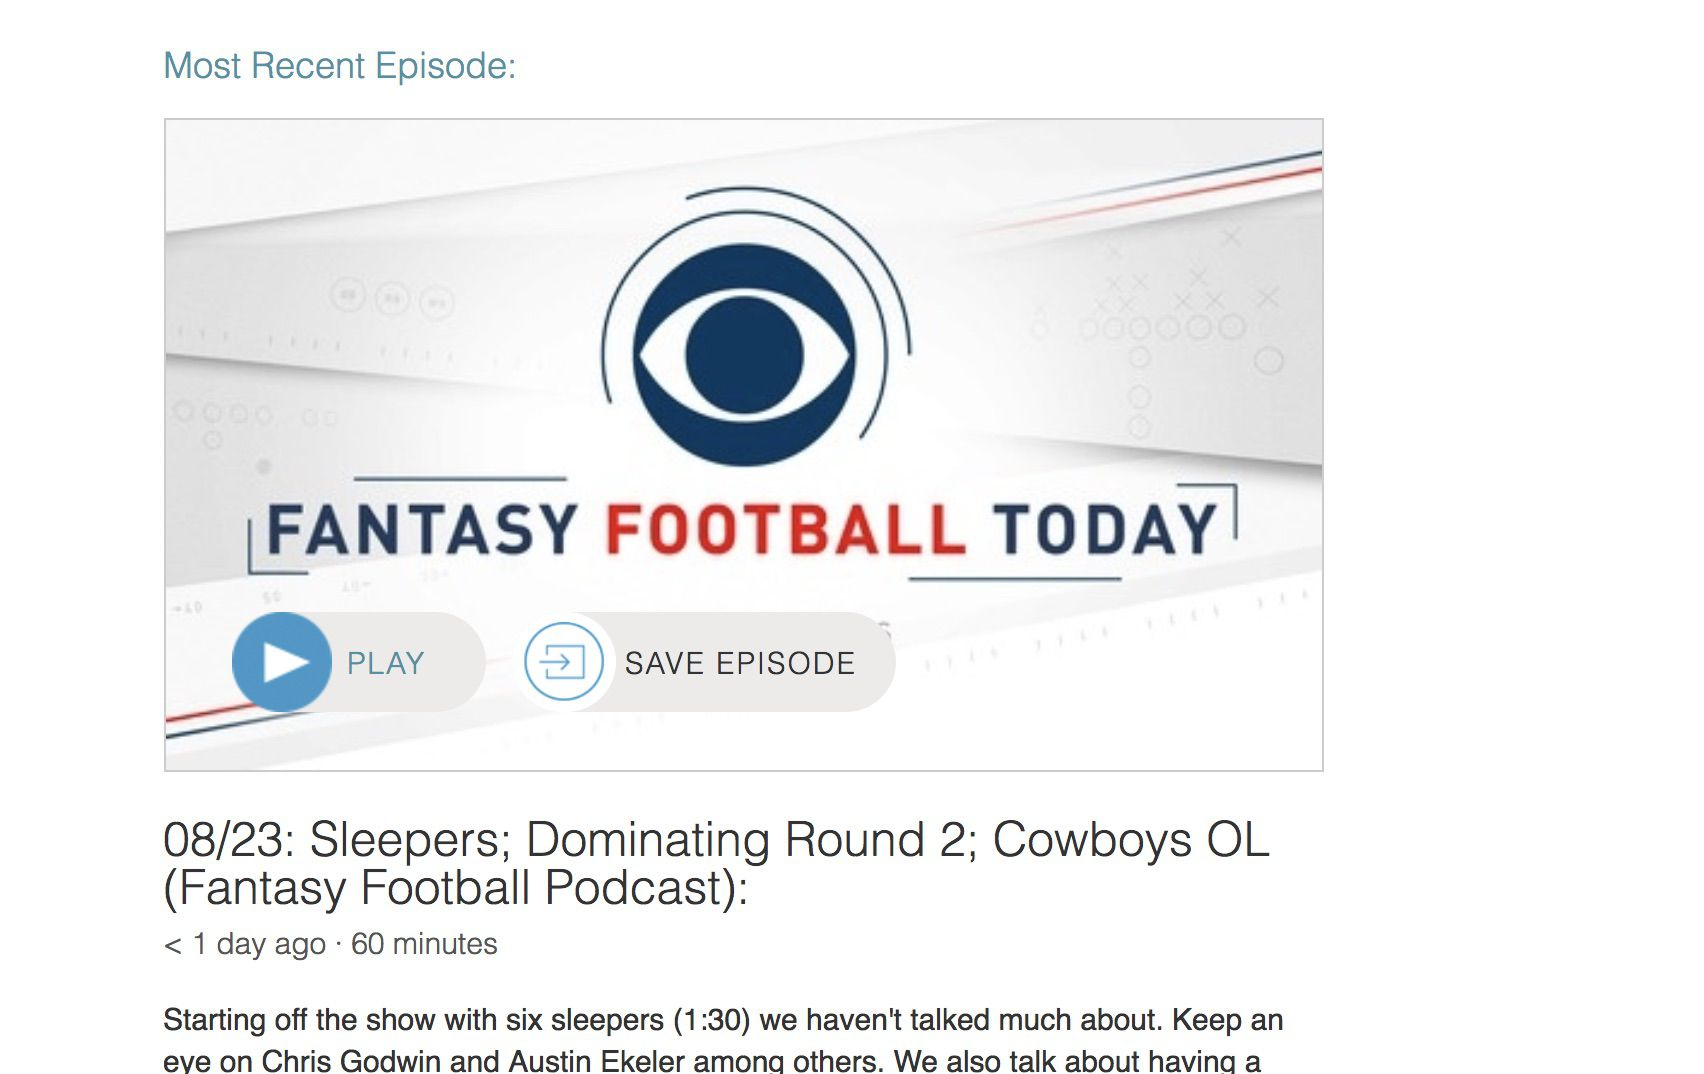 Screenshot of Fantasy Football Today's podcast page on Stitcher.